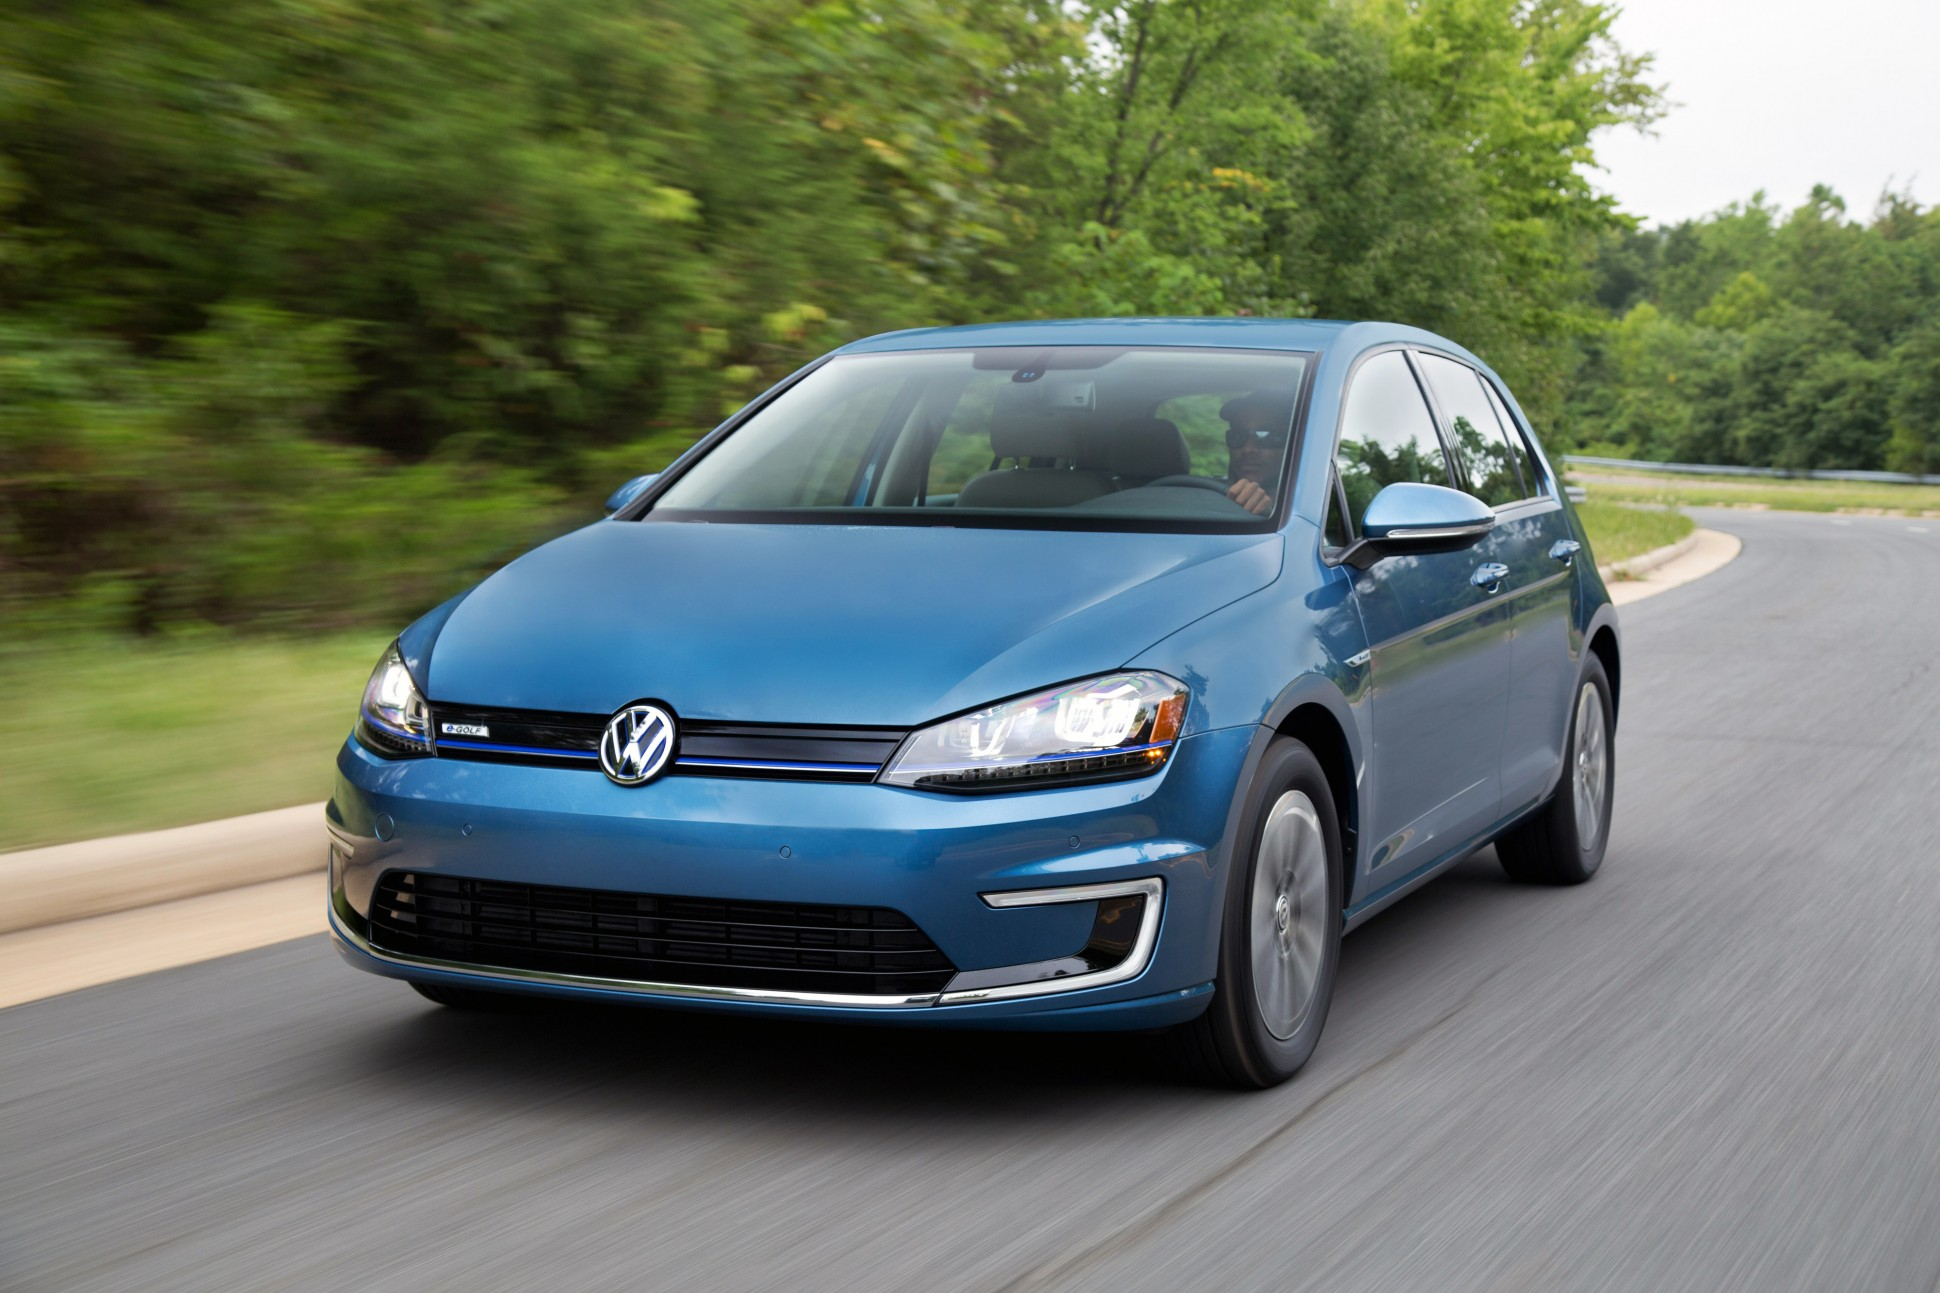 2015 Volkswagen E-golf #12